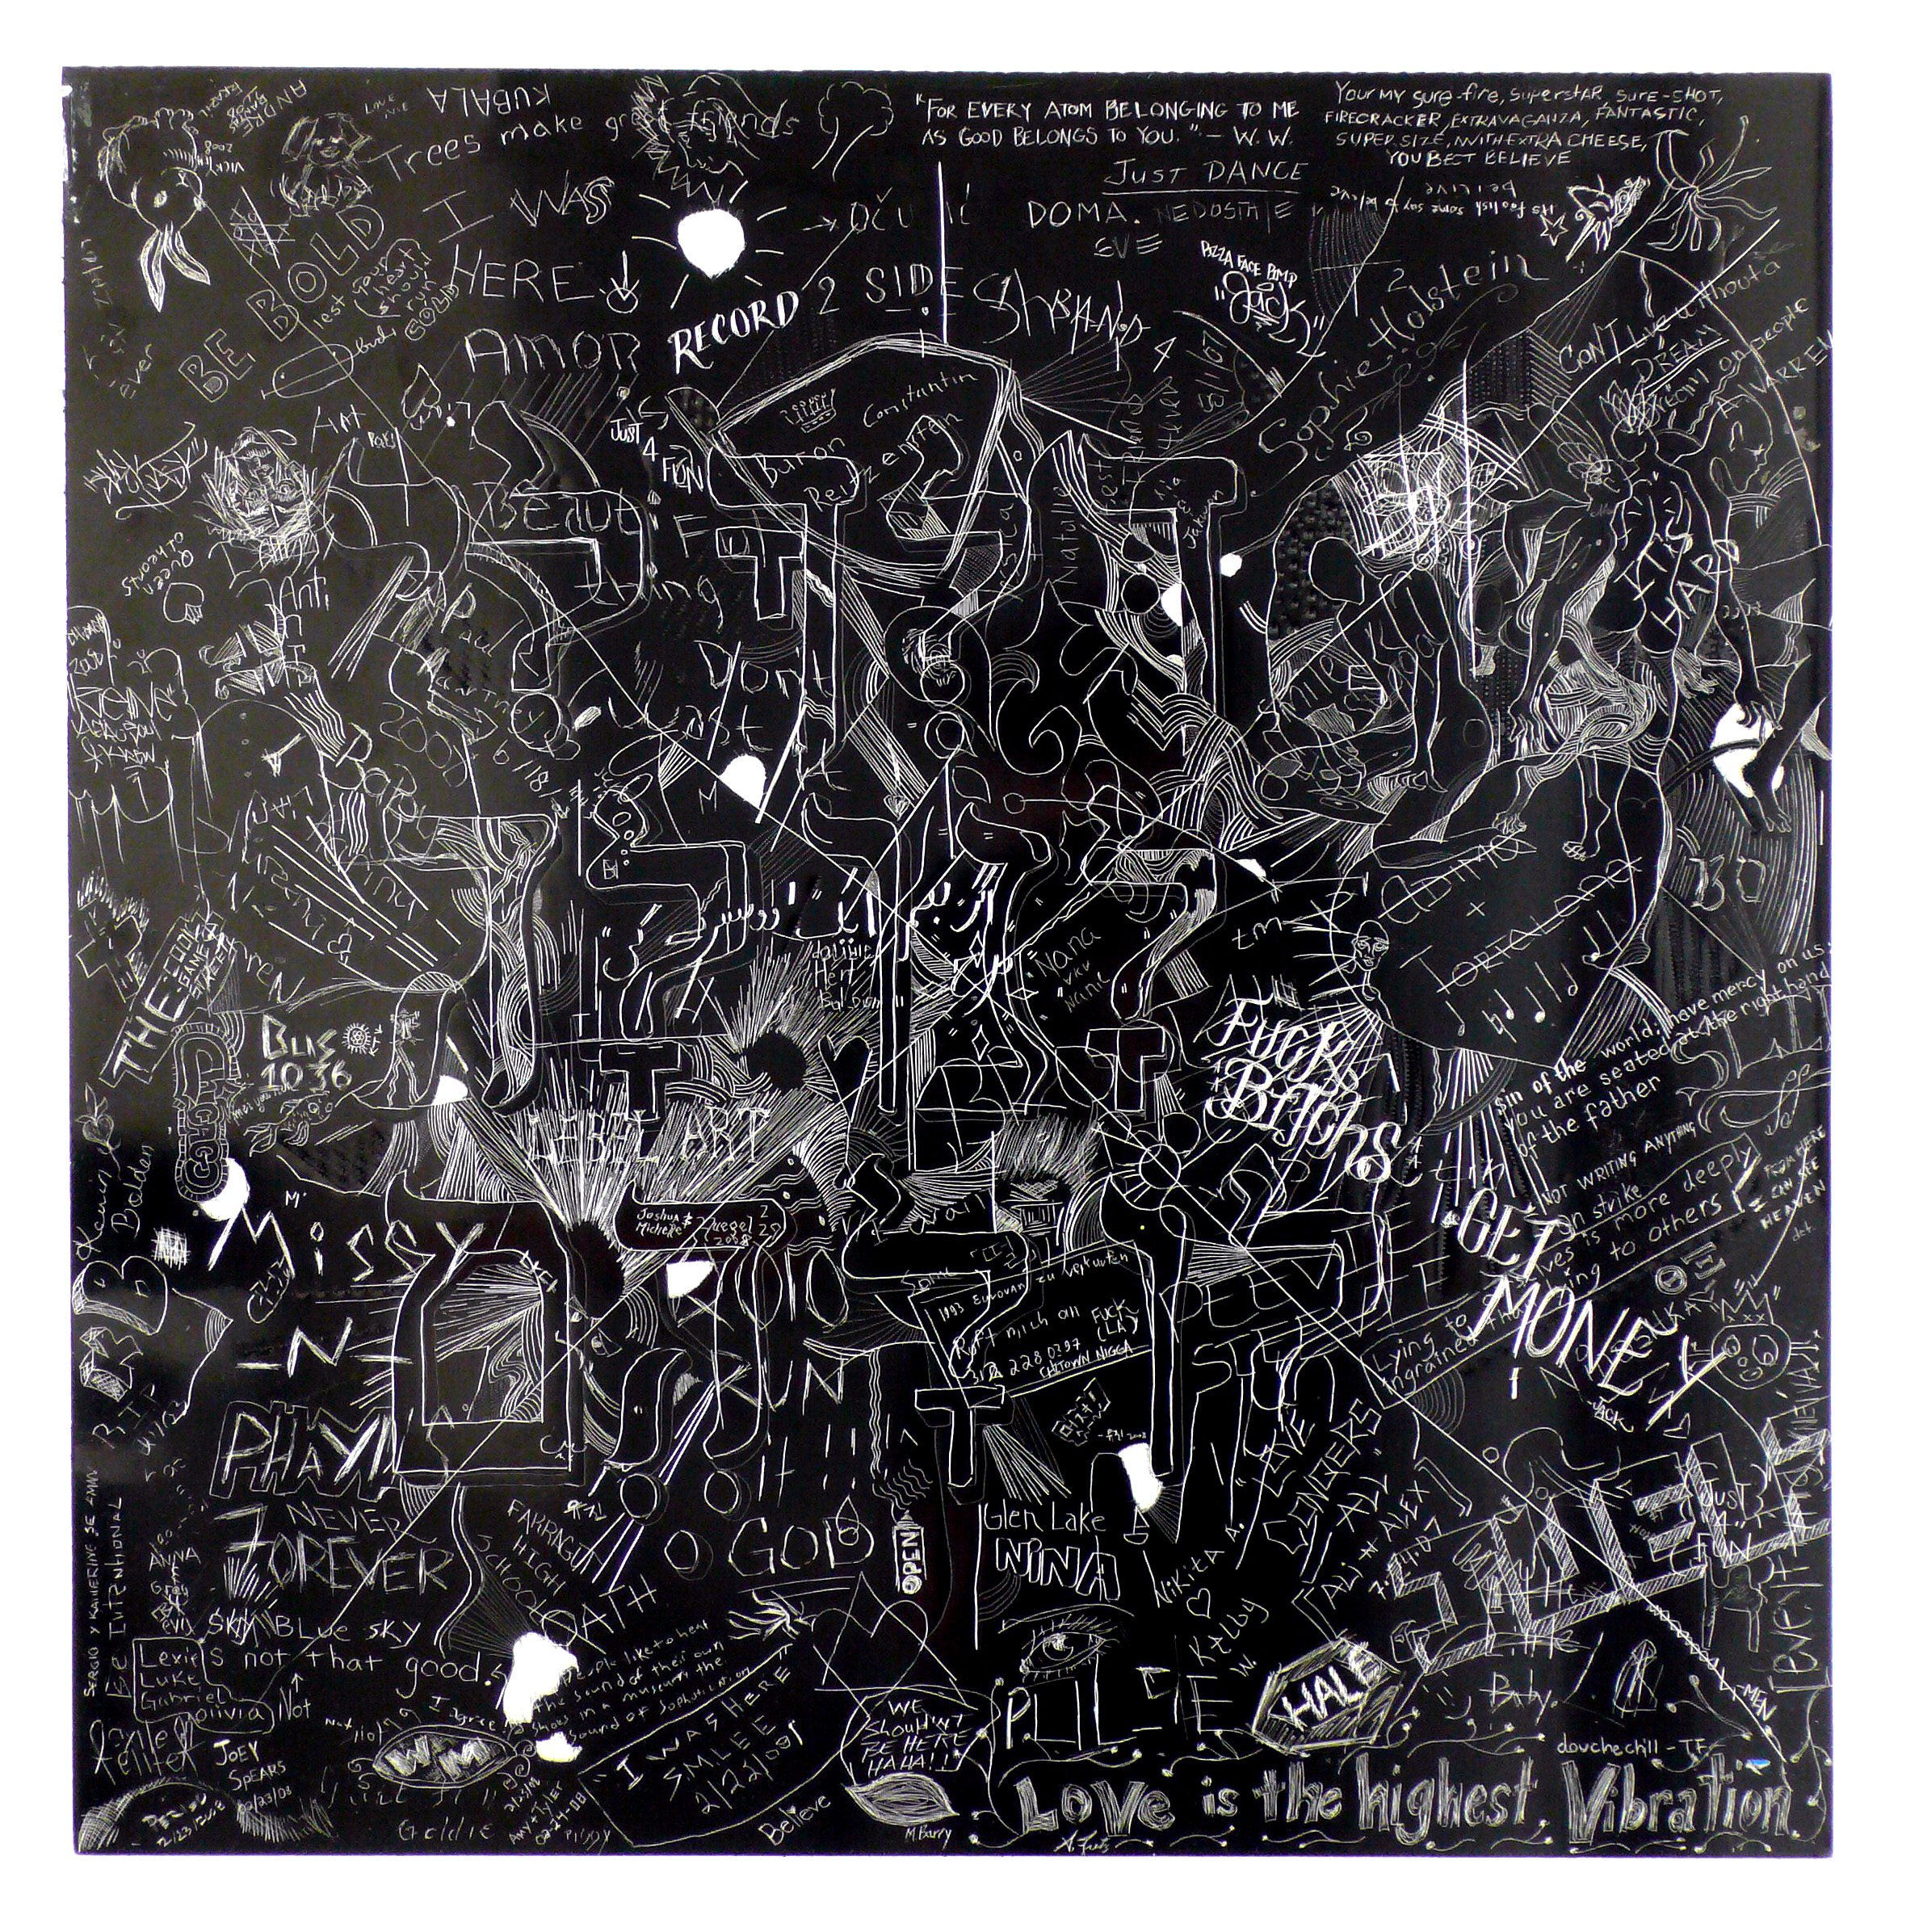 MCA 4,Collaborative incised drawings on aluminum with baked enamel finish made w/ the Museum of Contemporary Art Chicago's visitors and staff, 24 X 24 inches, 2008